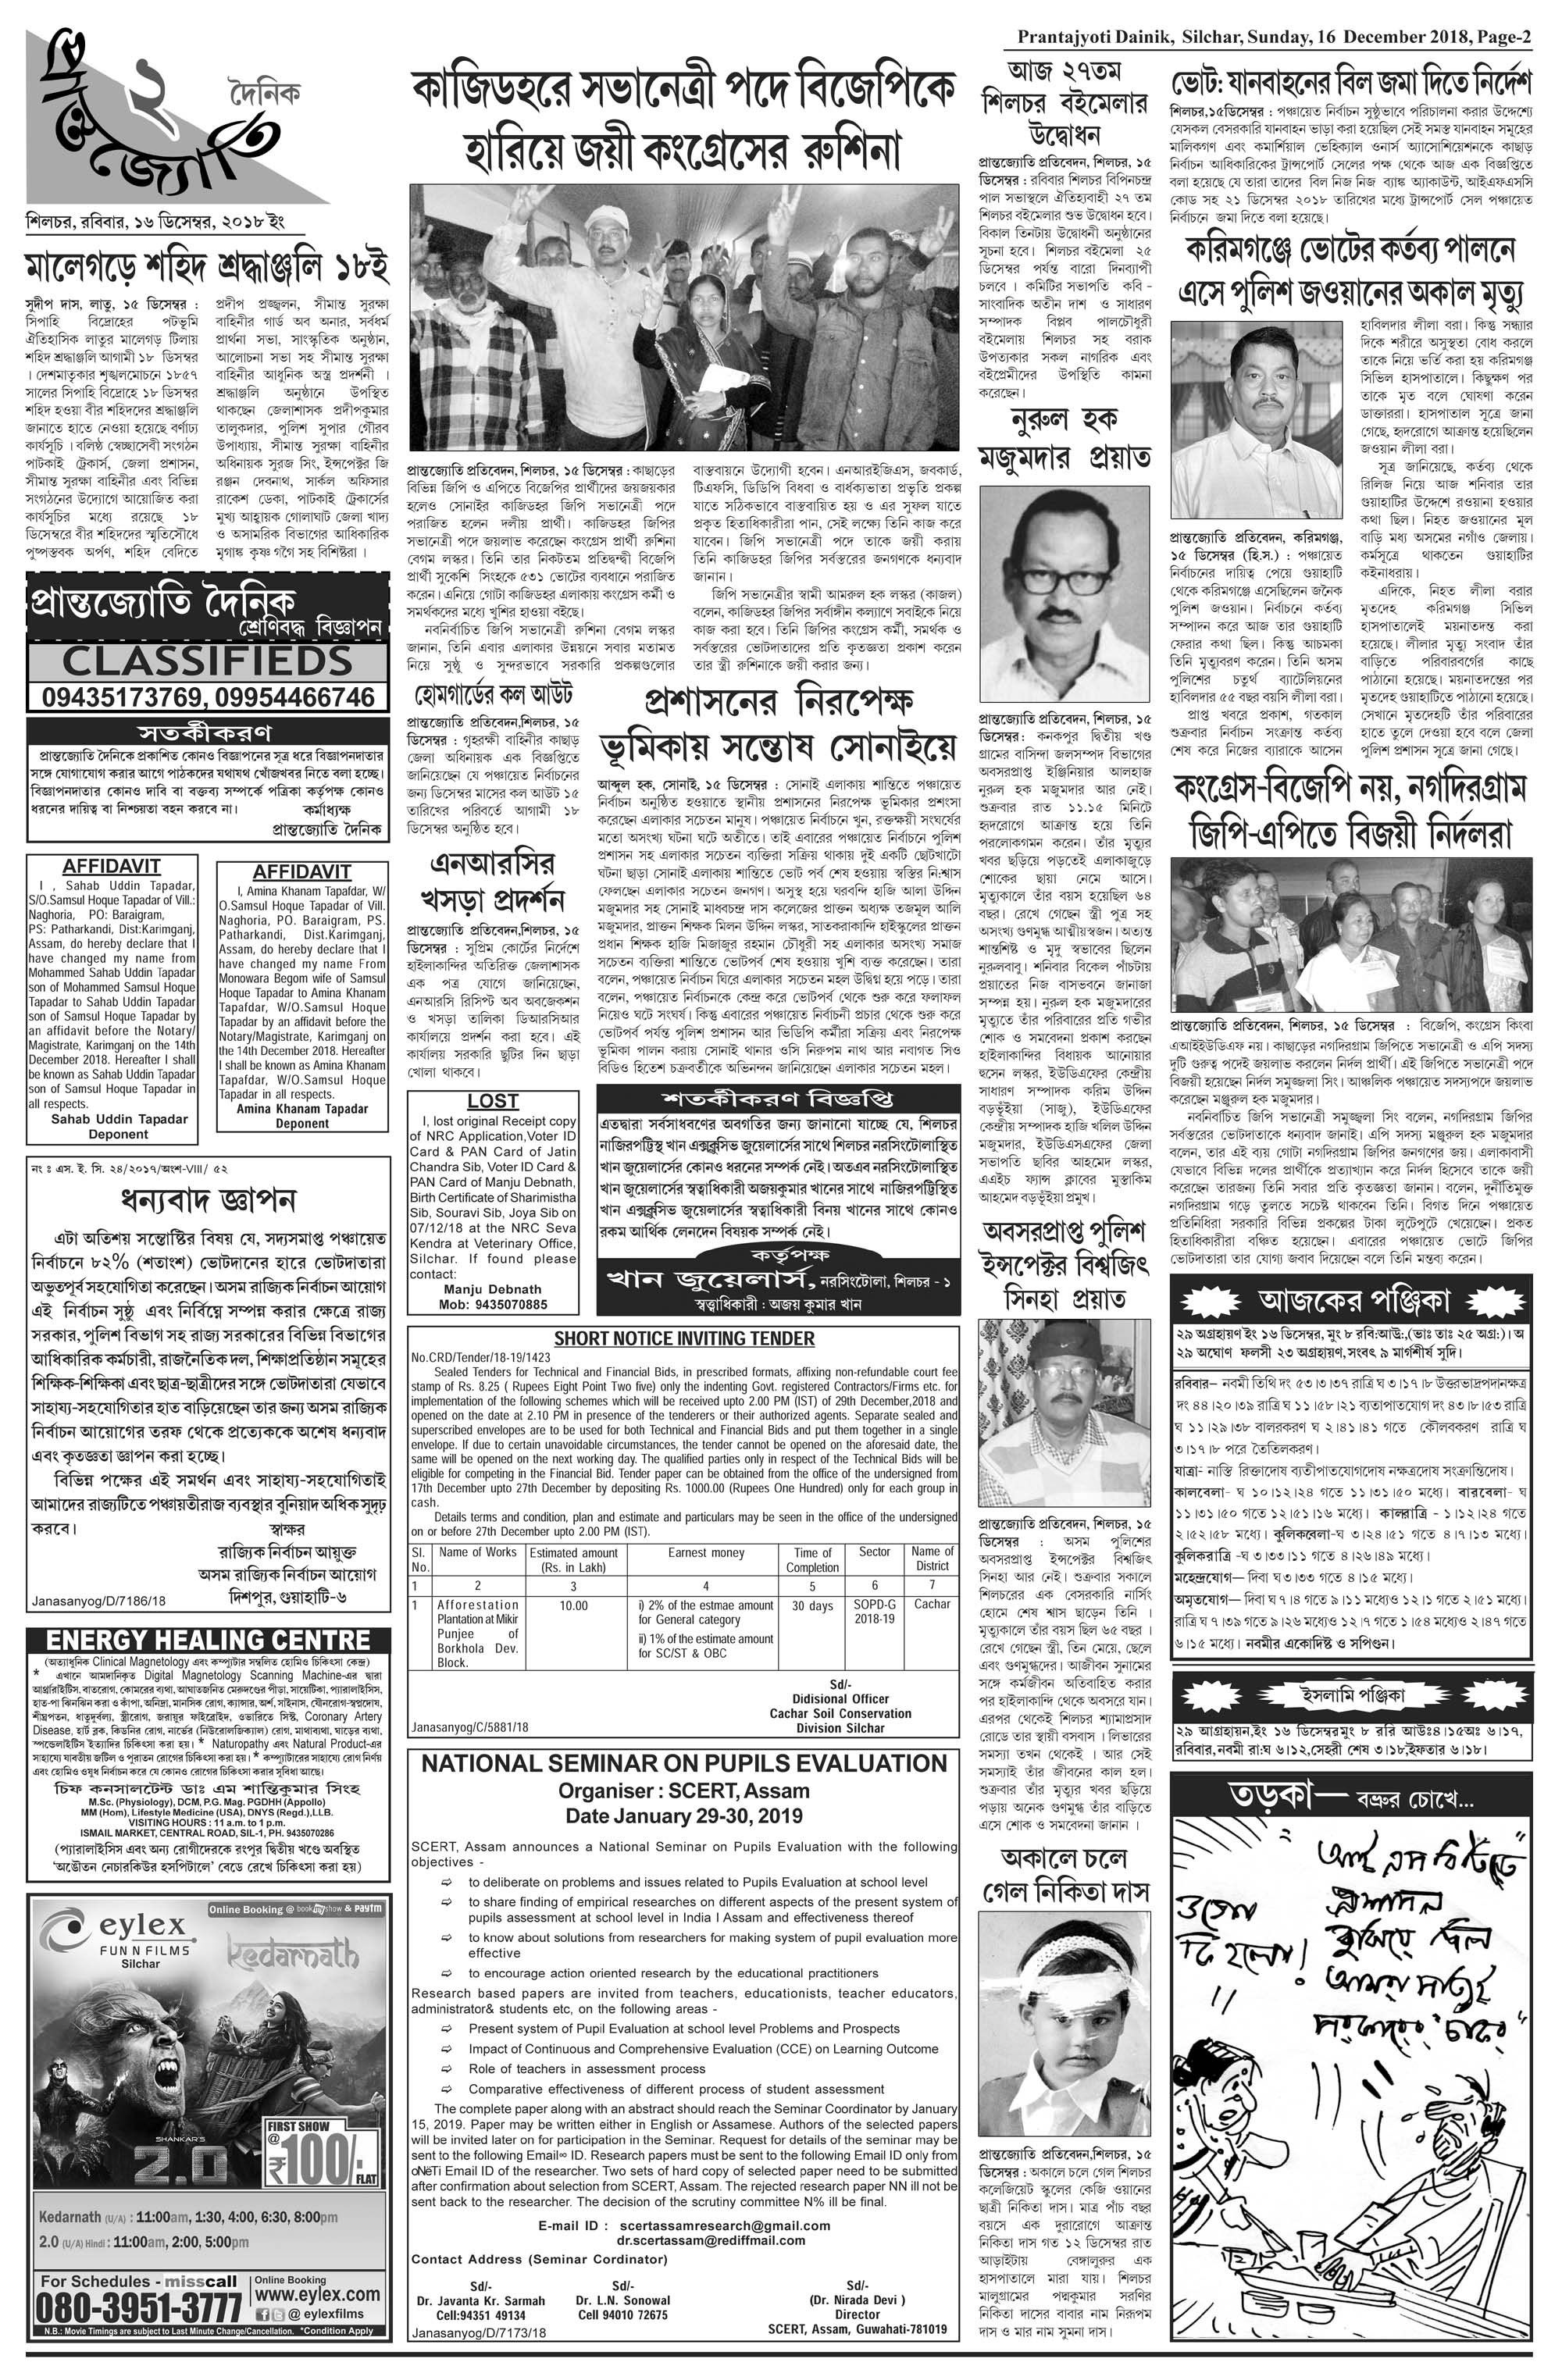 Dainik Prantajyoti  Newspaper Classified Ad Booking